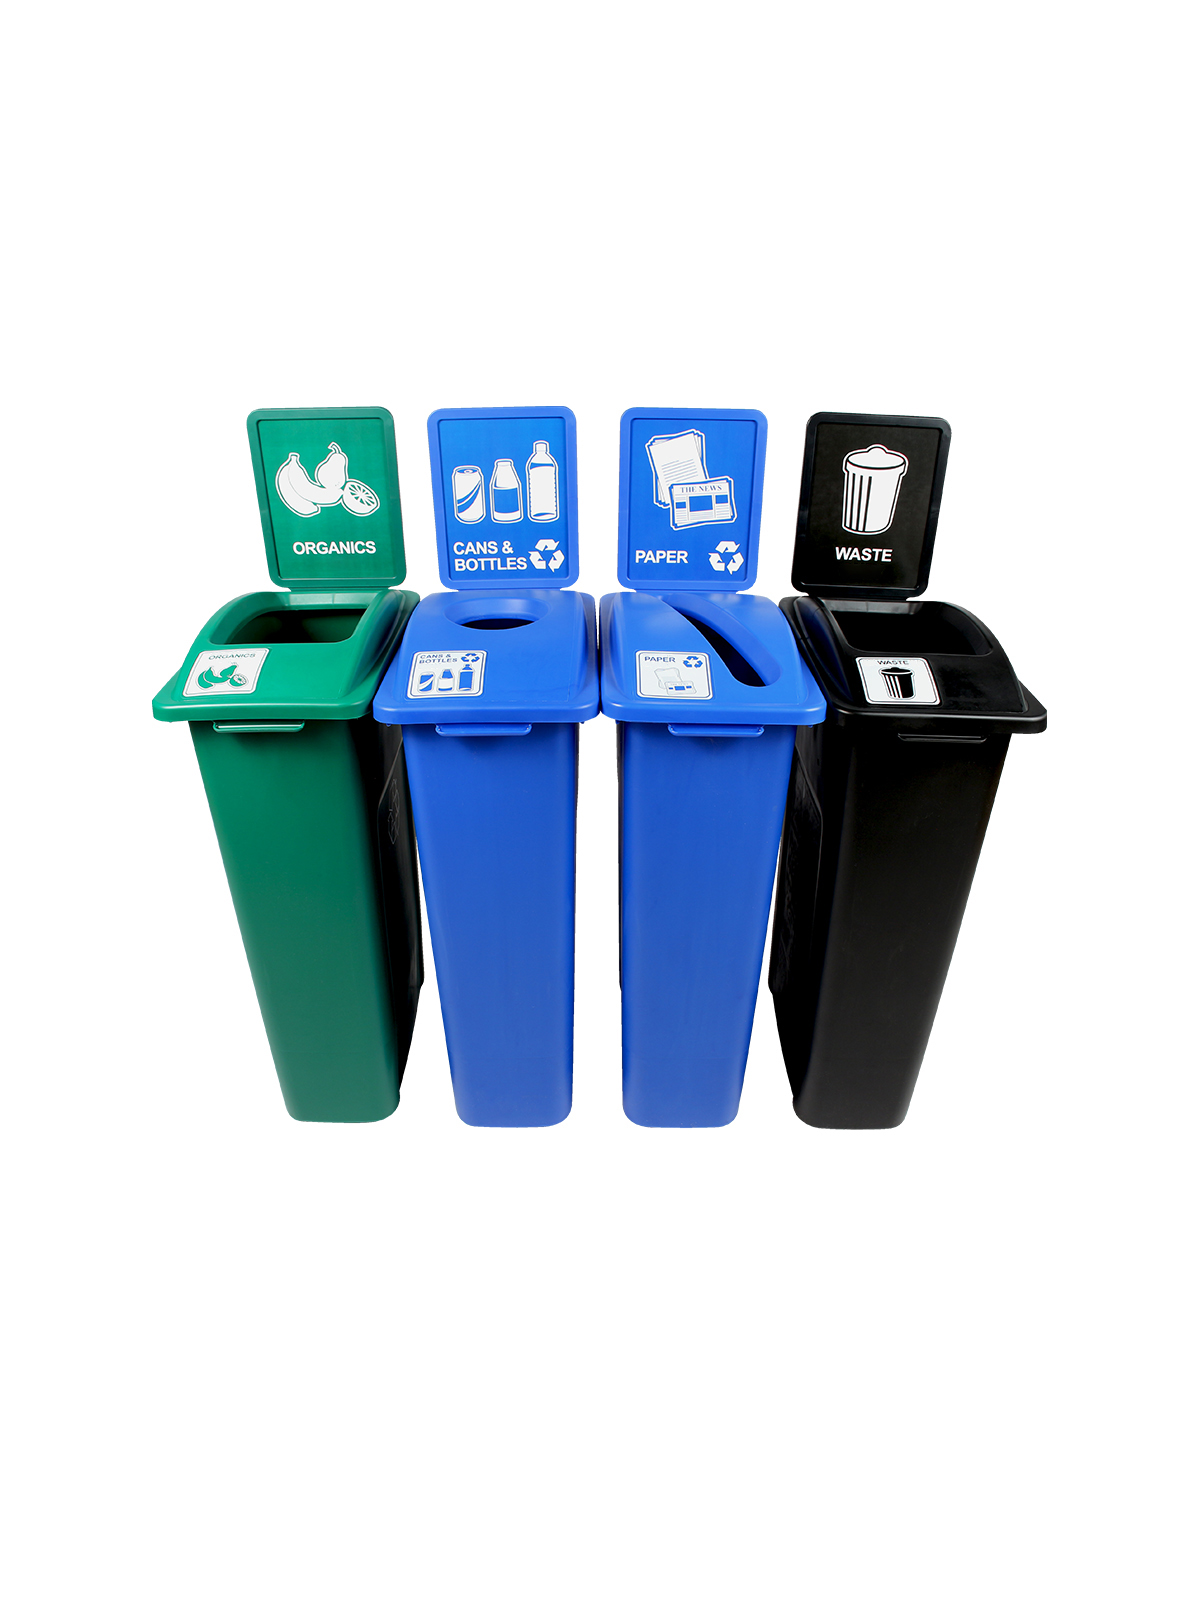 WASTE WATCHER - Quad - Cans & Bottles-Paper-Organics-Waste - Circle-Slot-Full - Blue-Blue-Green-Black